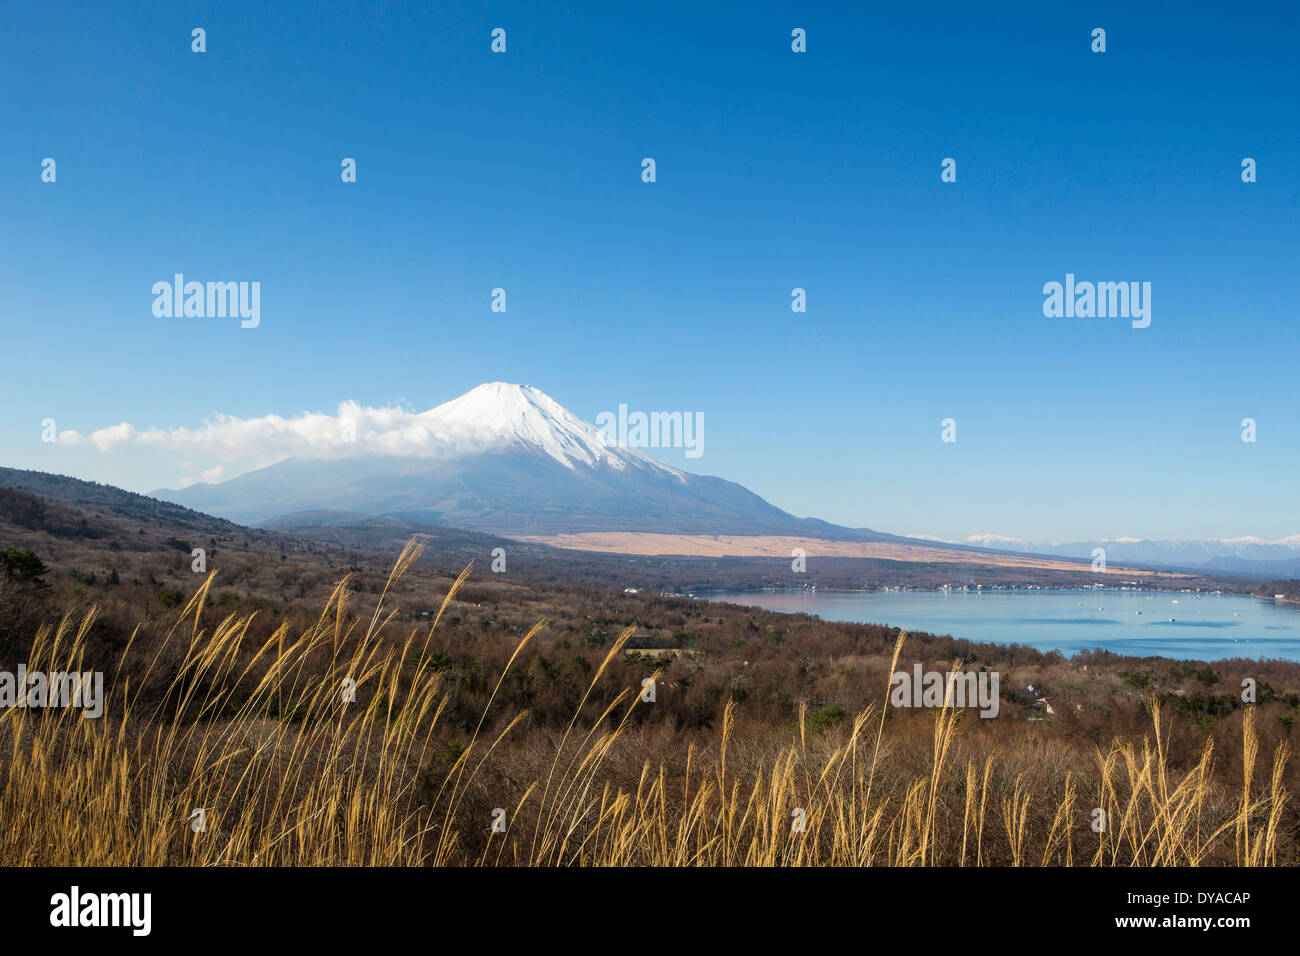 Japan, Asia, Lake Yamanaka, Yamanaka, clear, Fuji, lake, mount, panorama, snow, touristic, travel - Stock Image